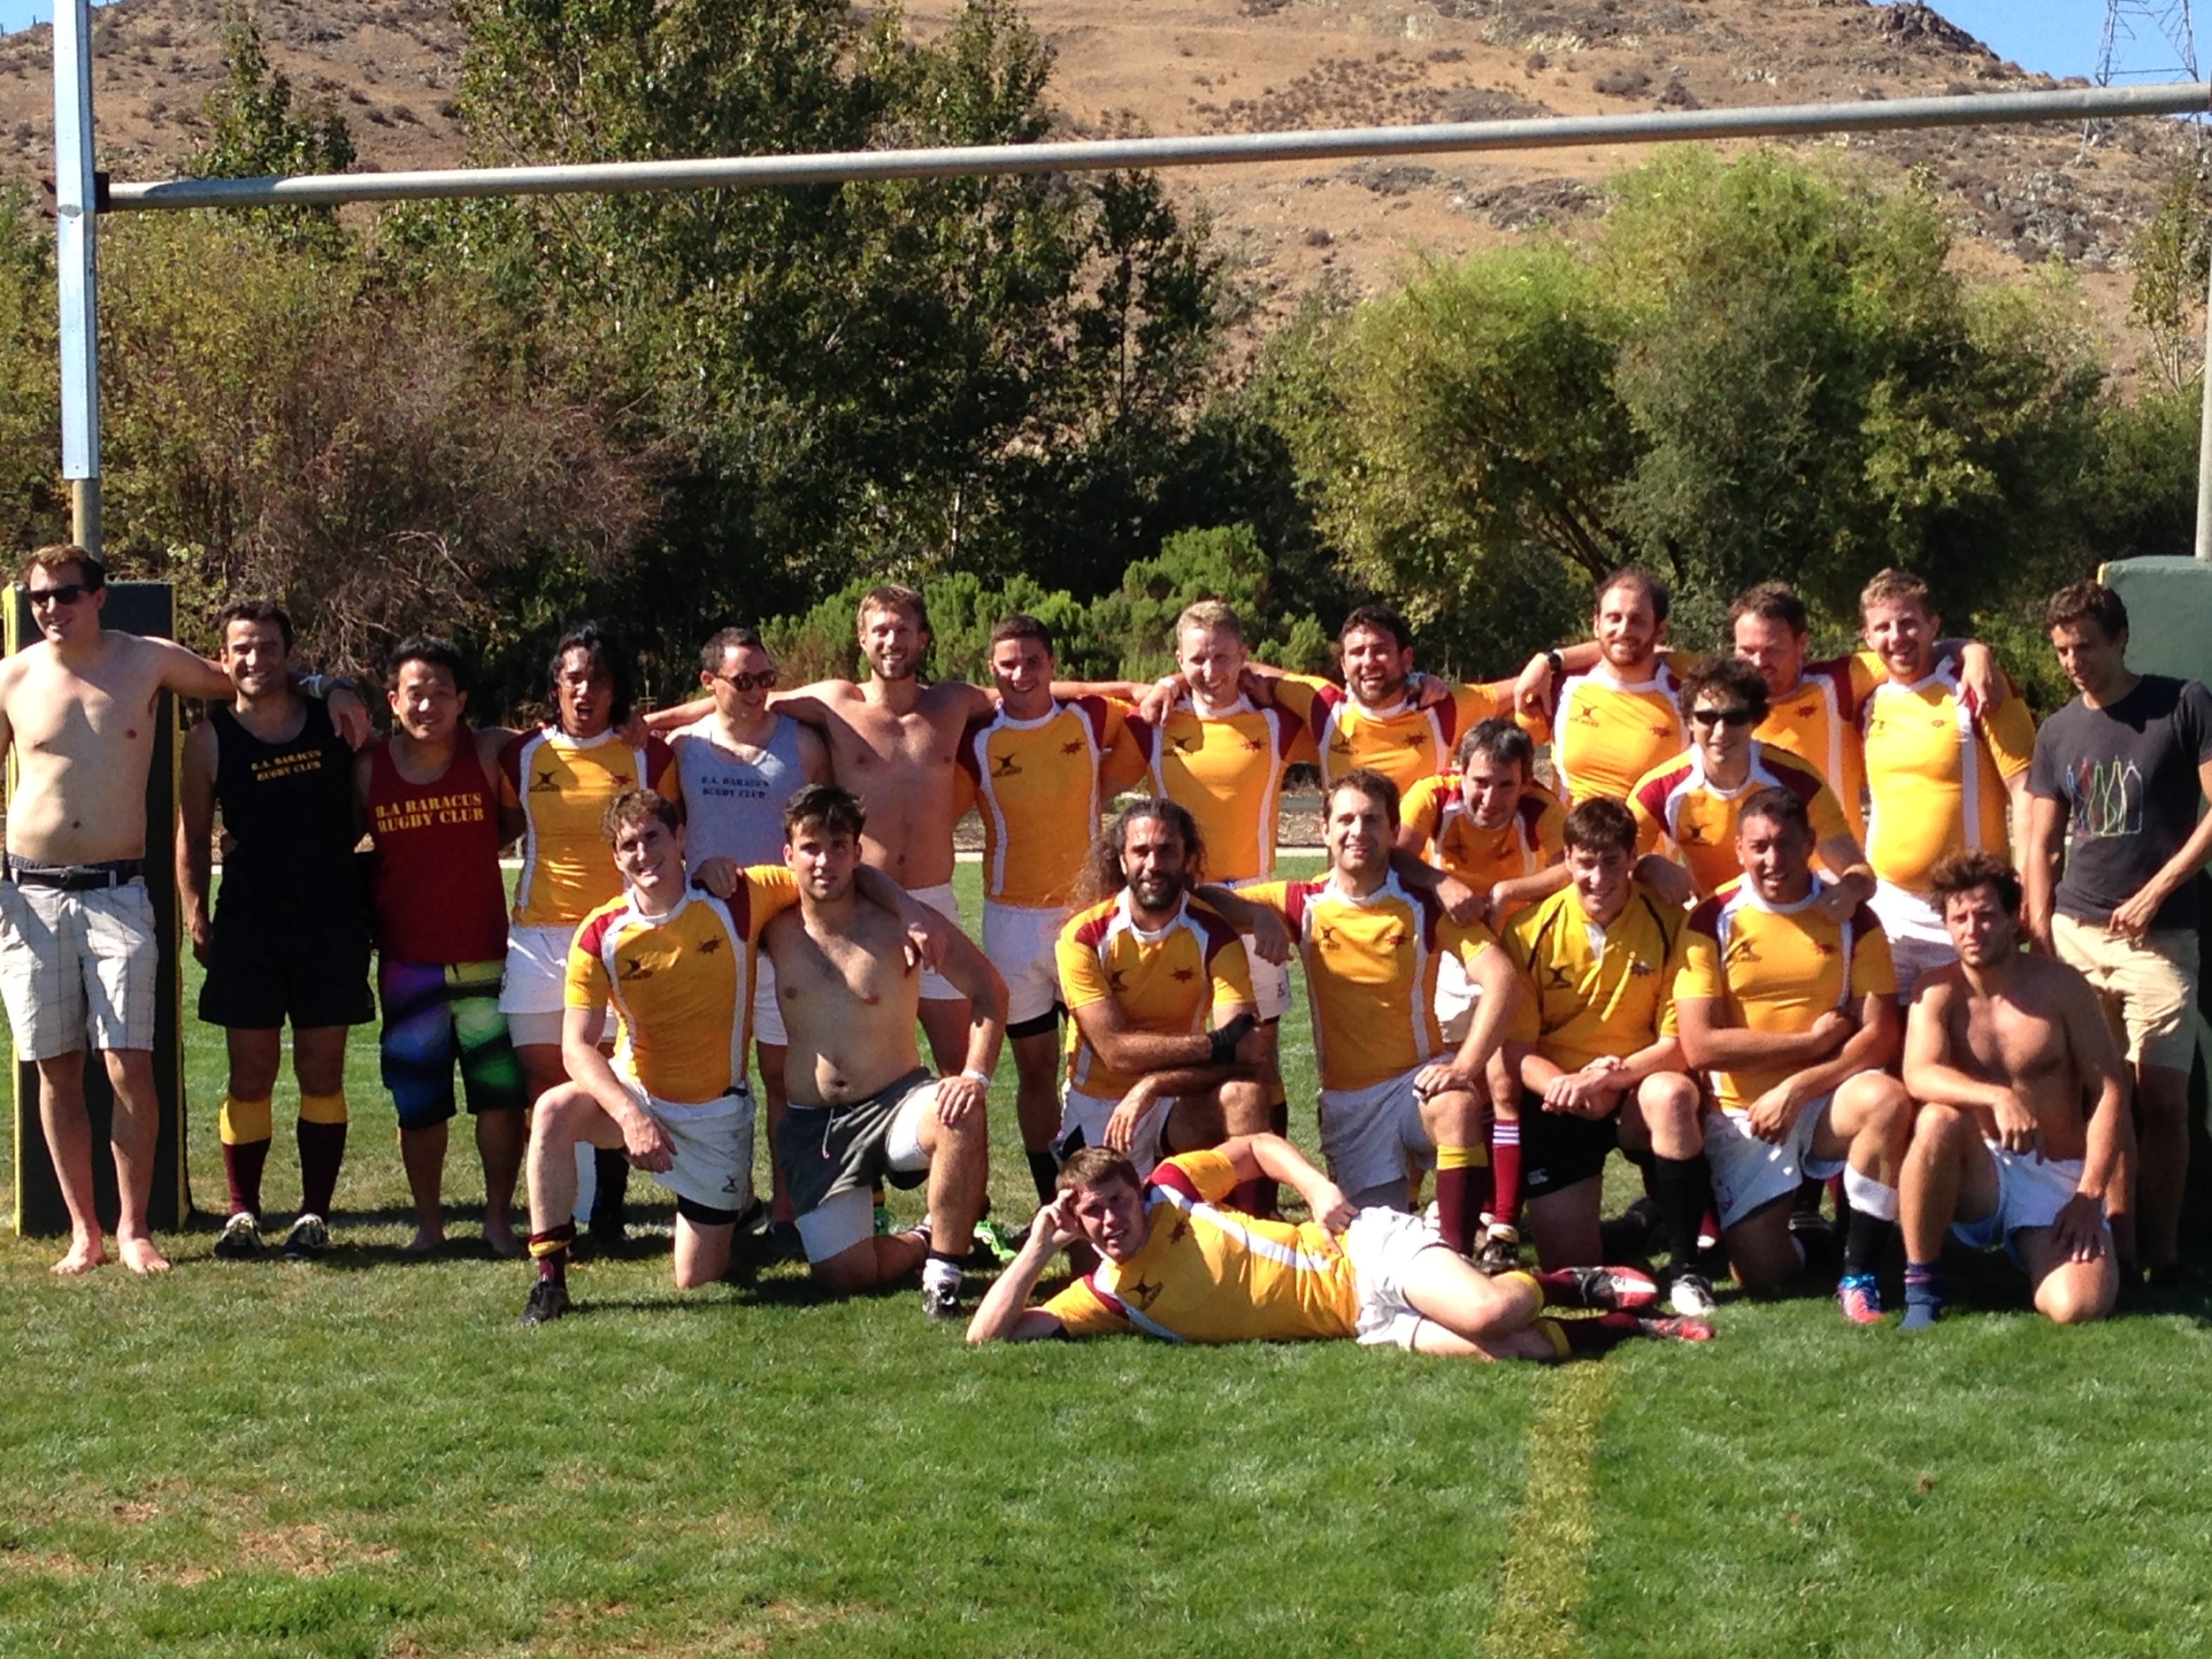 BA Baracus RFC at the Tri-Tip 7s in SLO